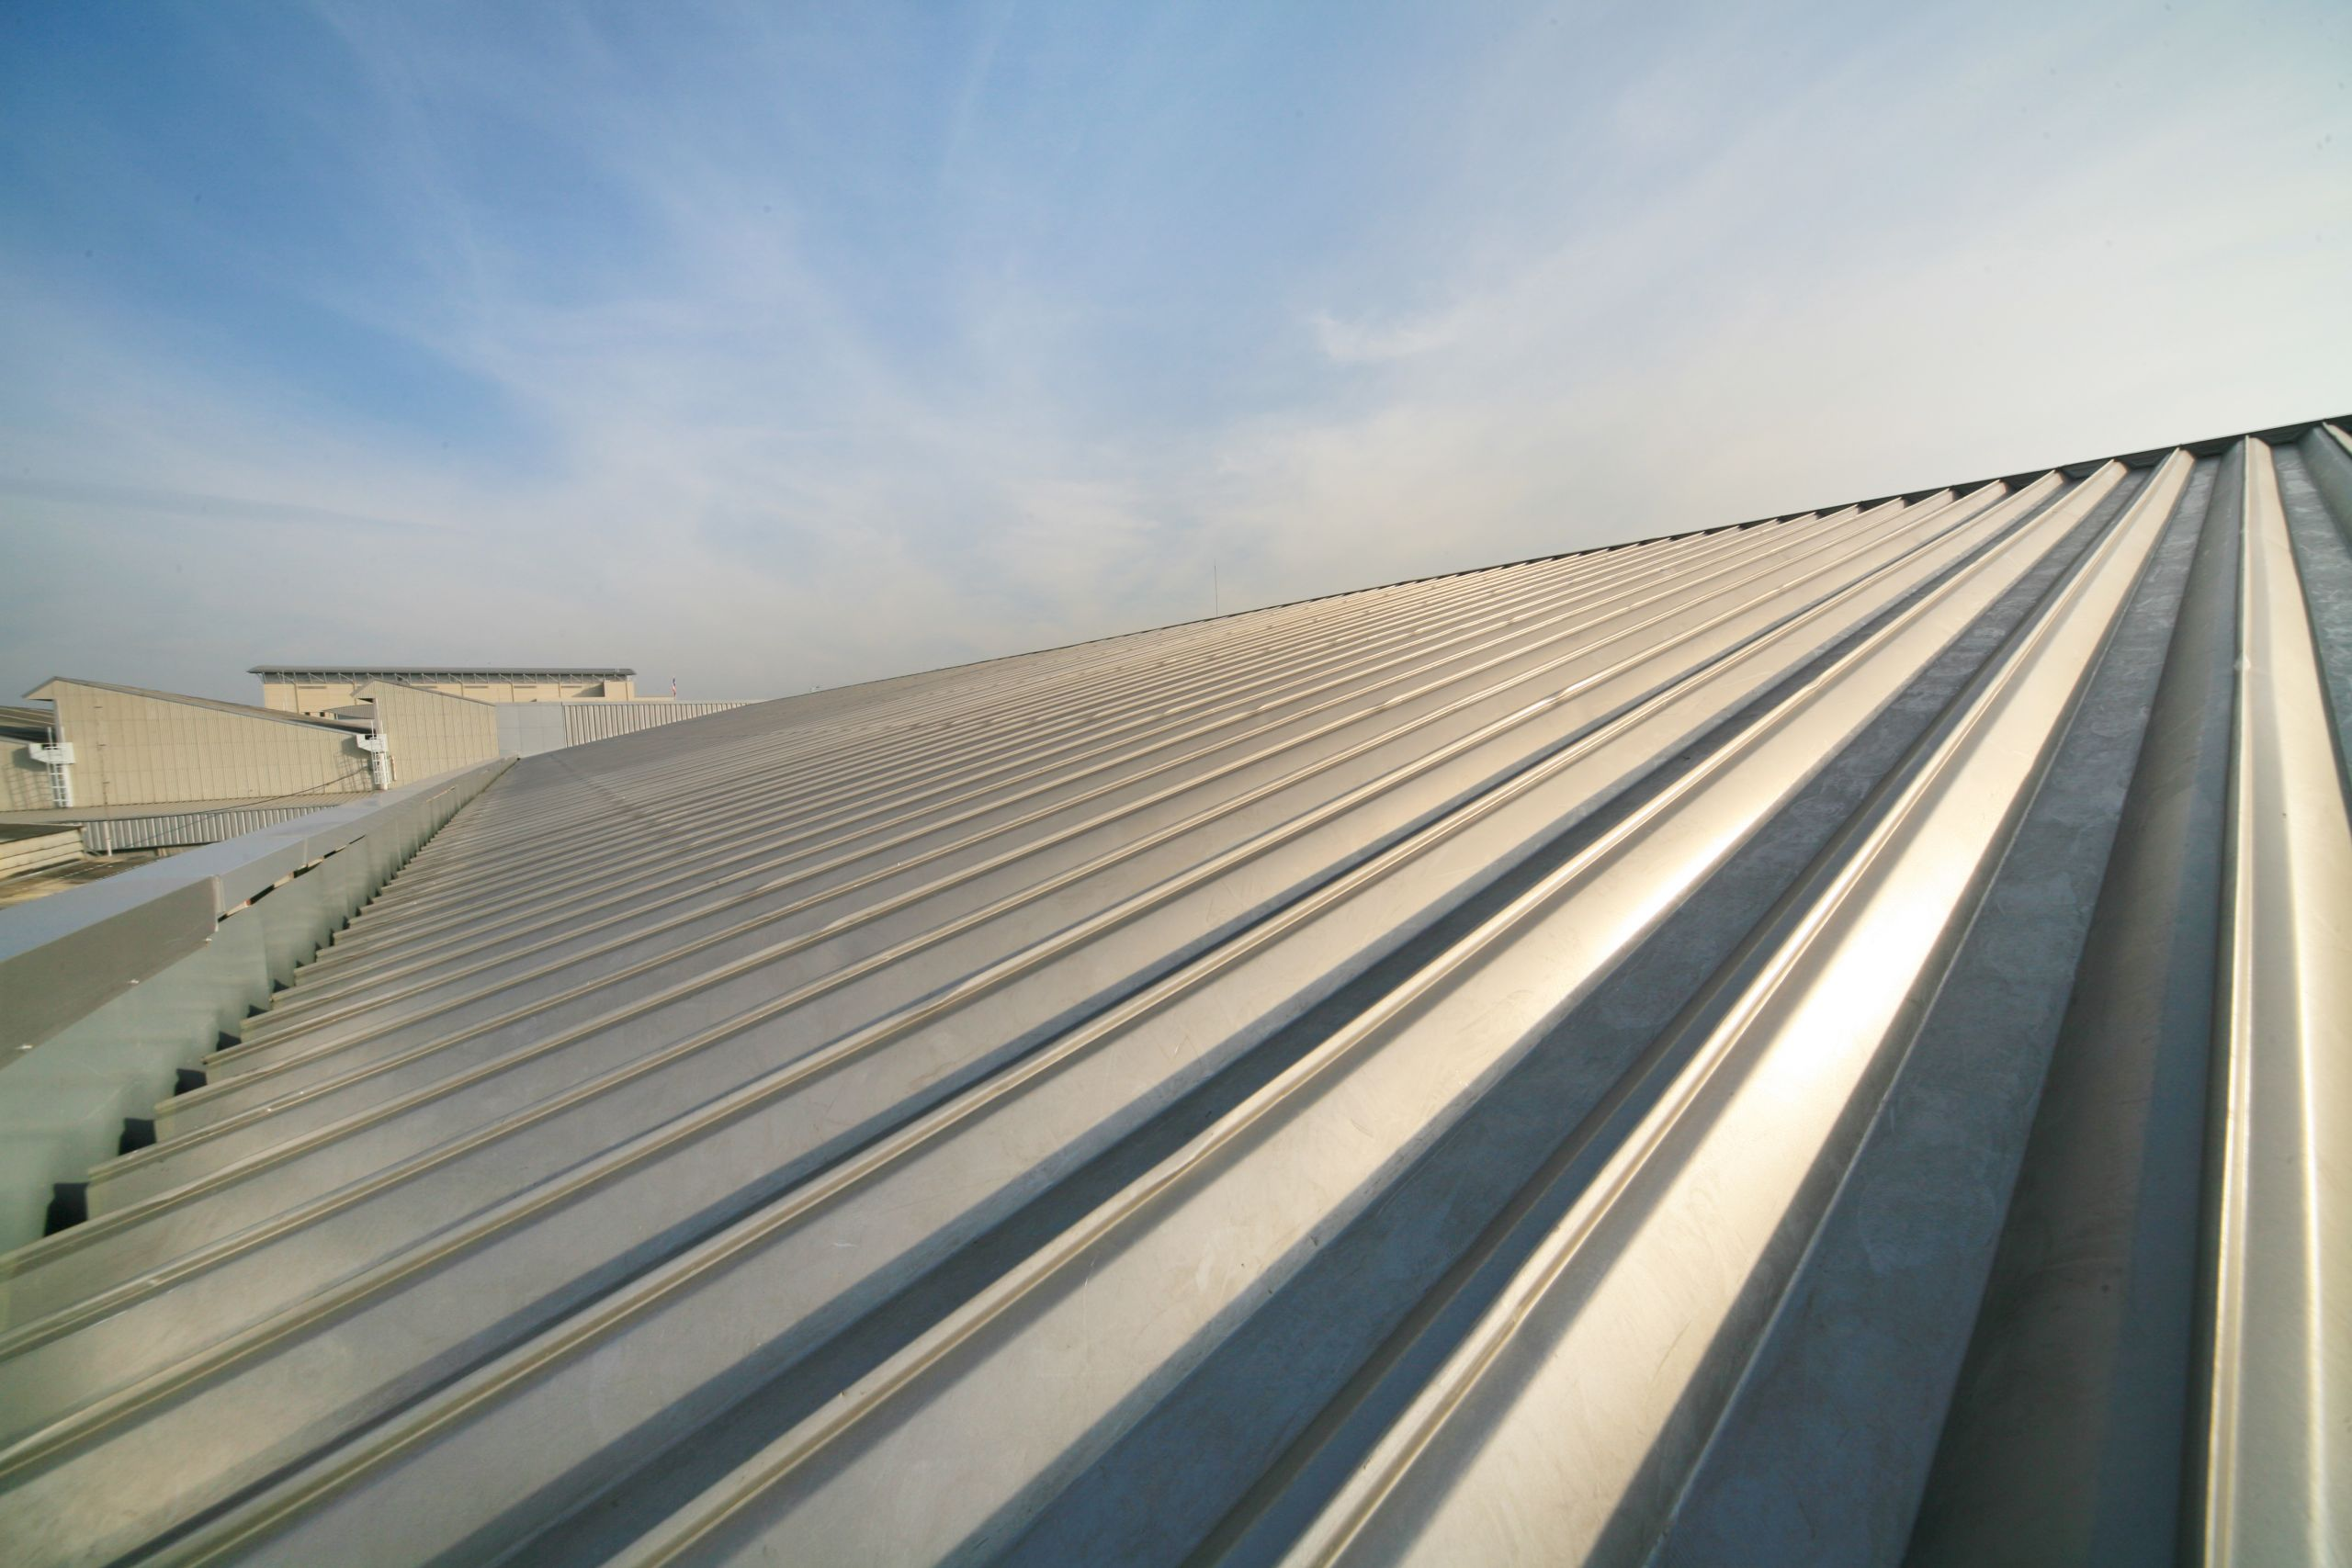 Metal Roof Installation and Replacement for Large Commercial Warehouse Property - Commercial Roof Replacement